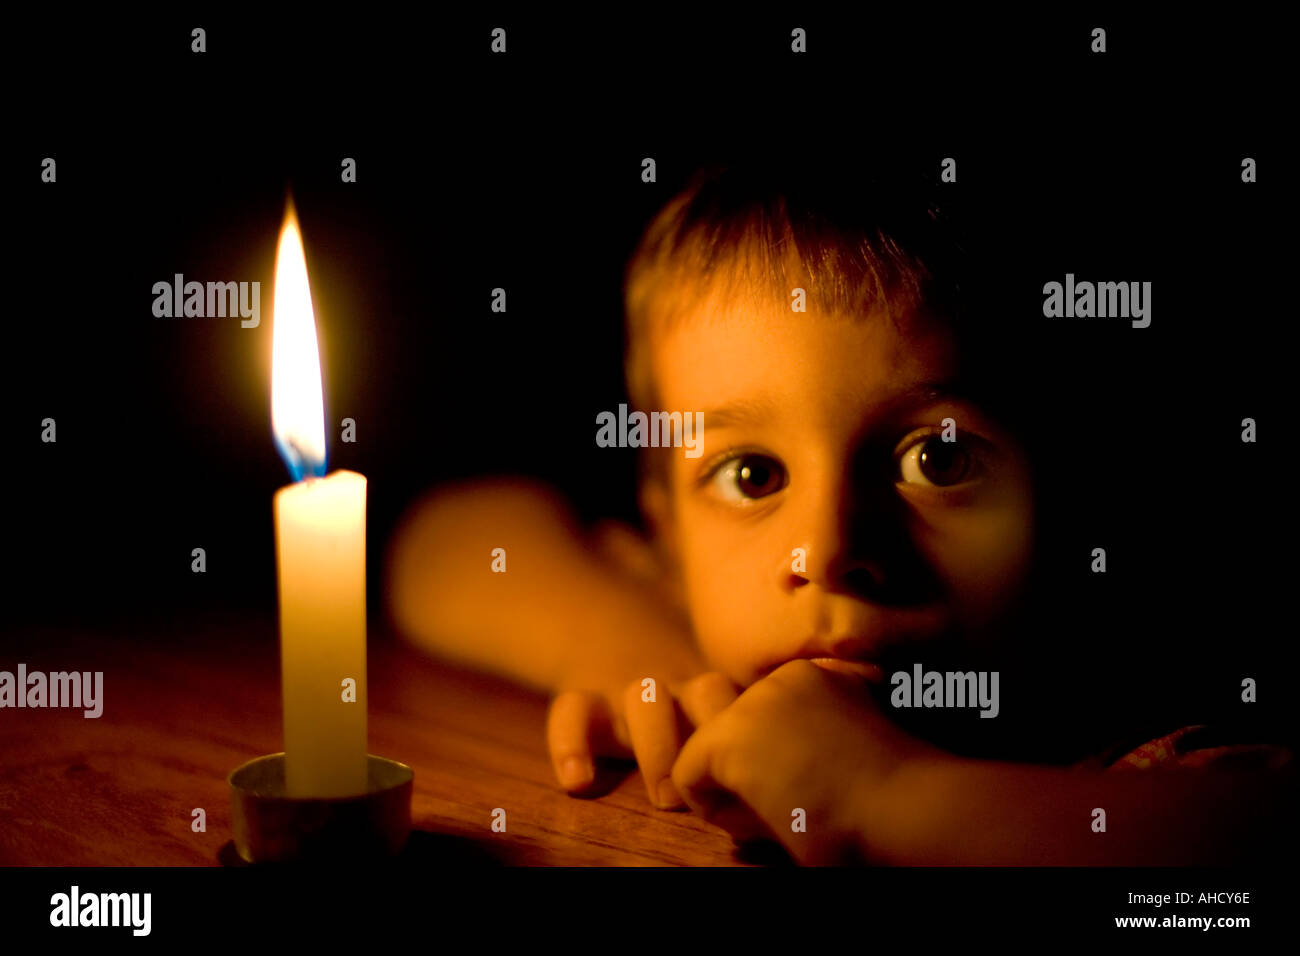 Head and shoulders portrait of a small boy in candlelight - Stock Image